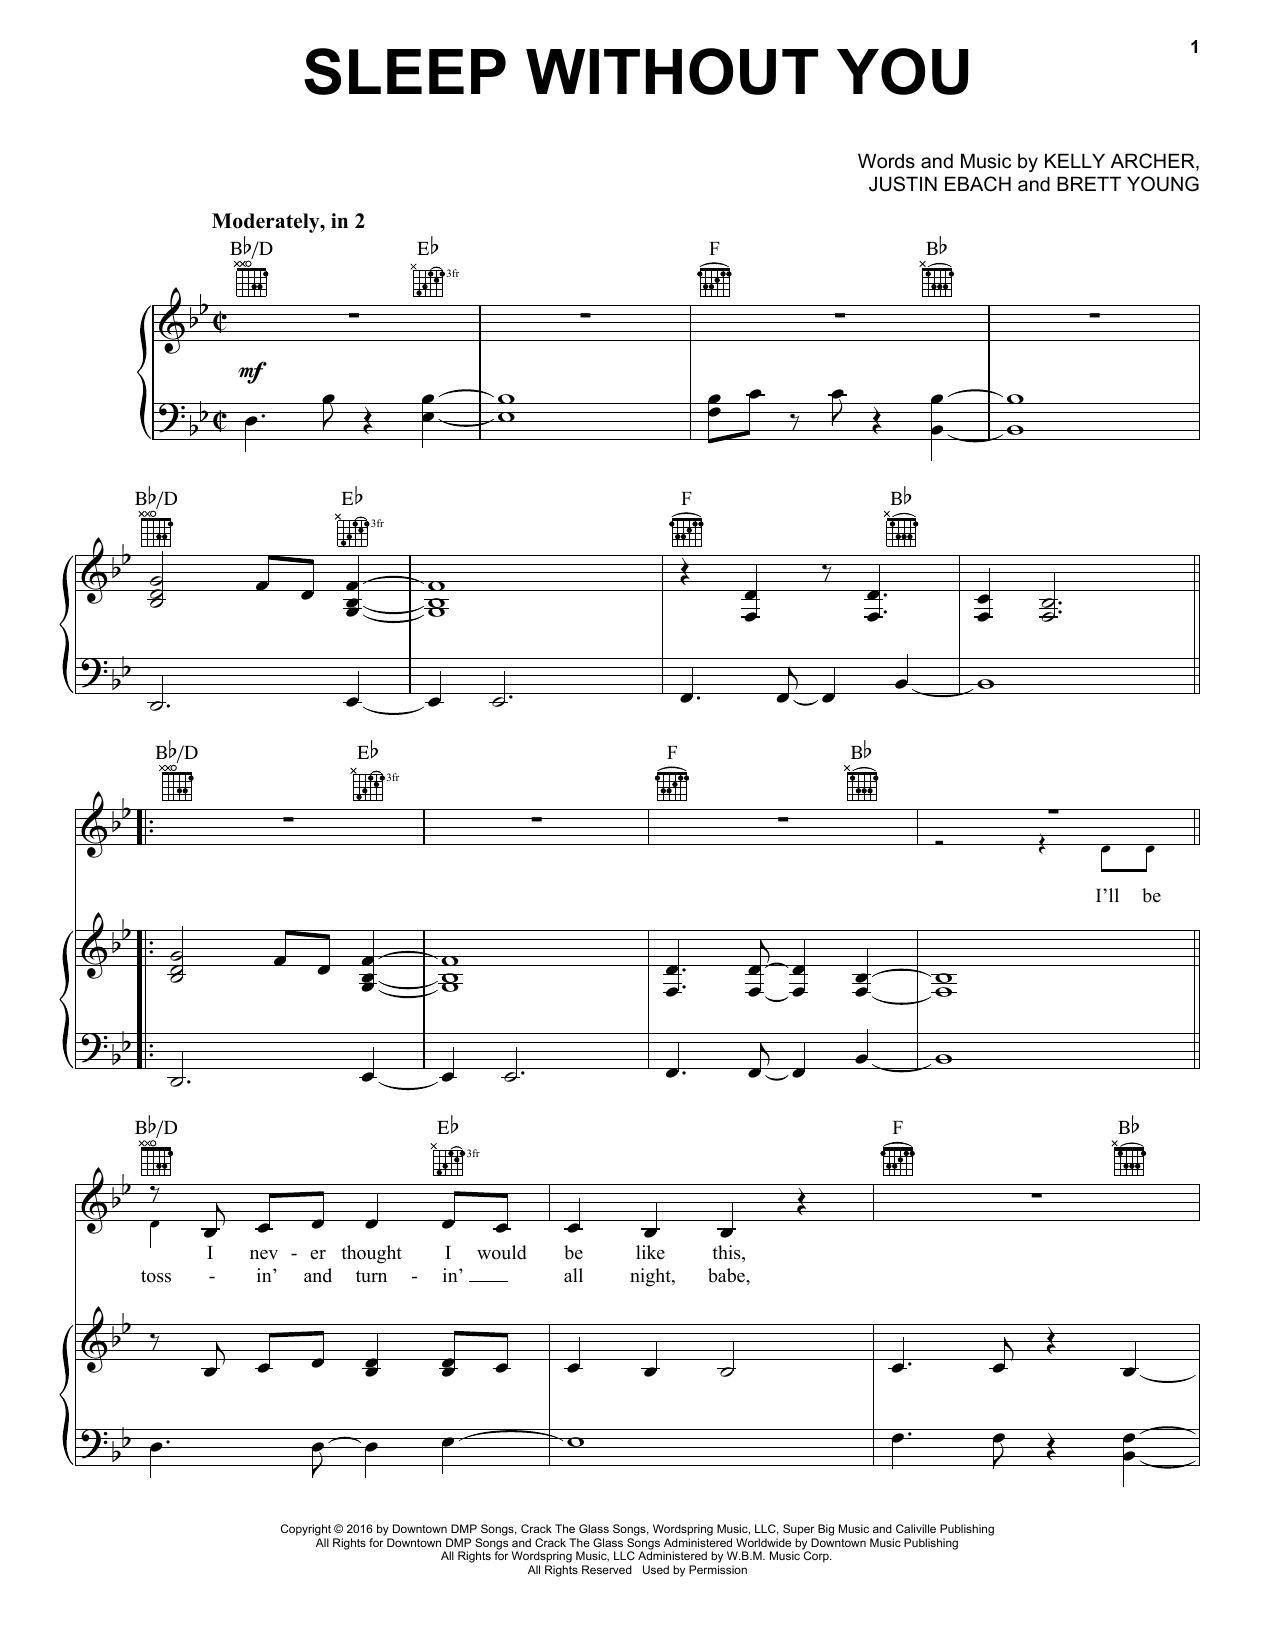 Brett Young Sleep Without You sheet music notes and chords. Download Printable PDF.